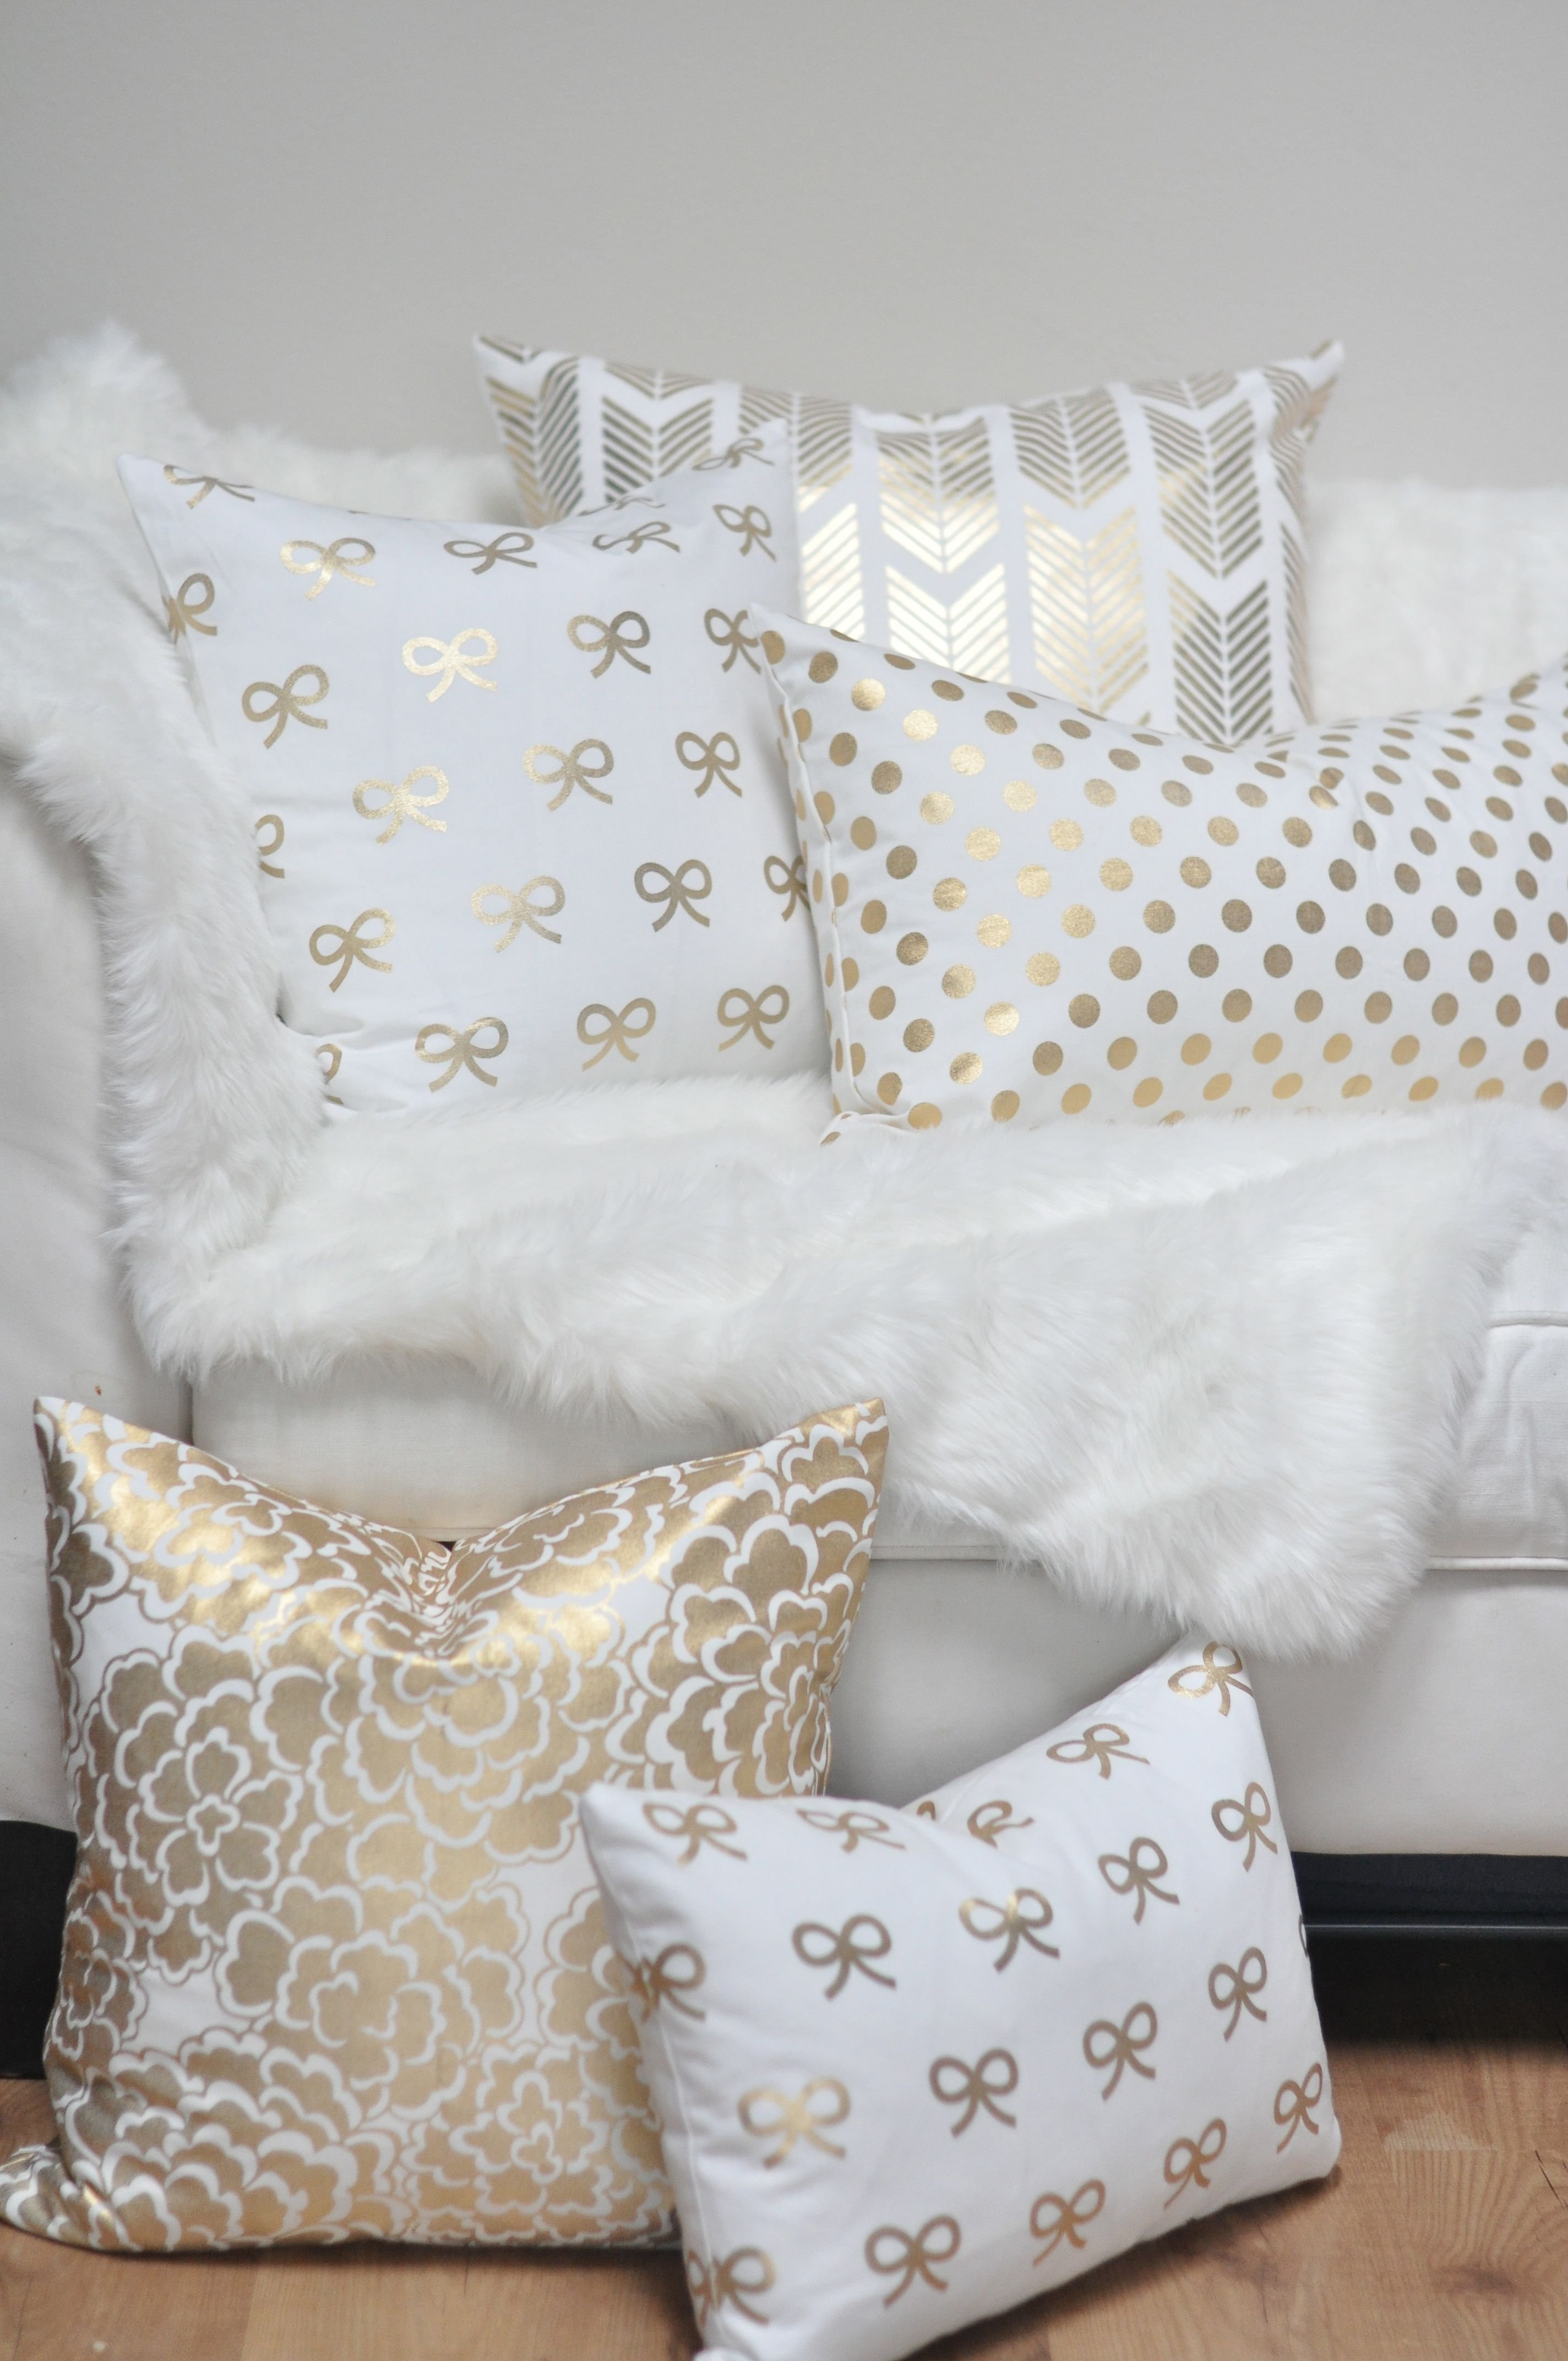 Best Gold Fleur Pillow Gold Pillows Studio And Floral With Pictures